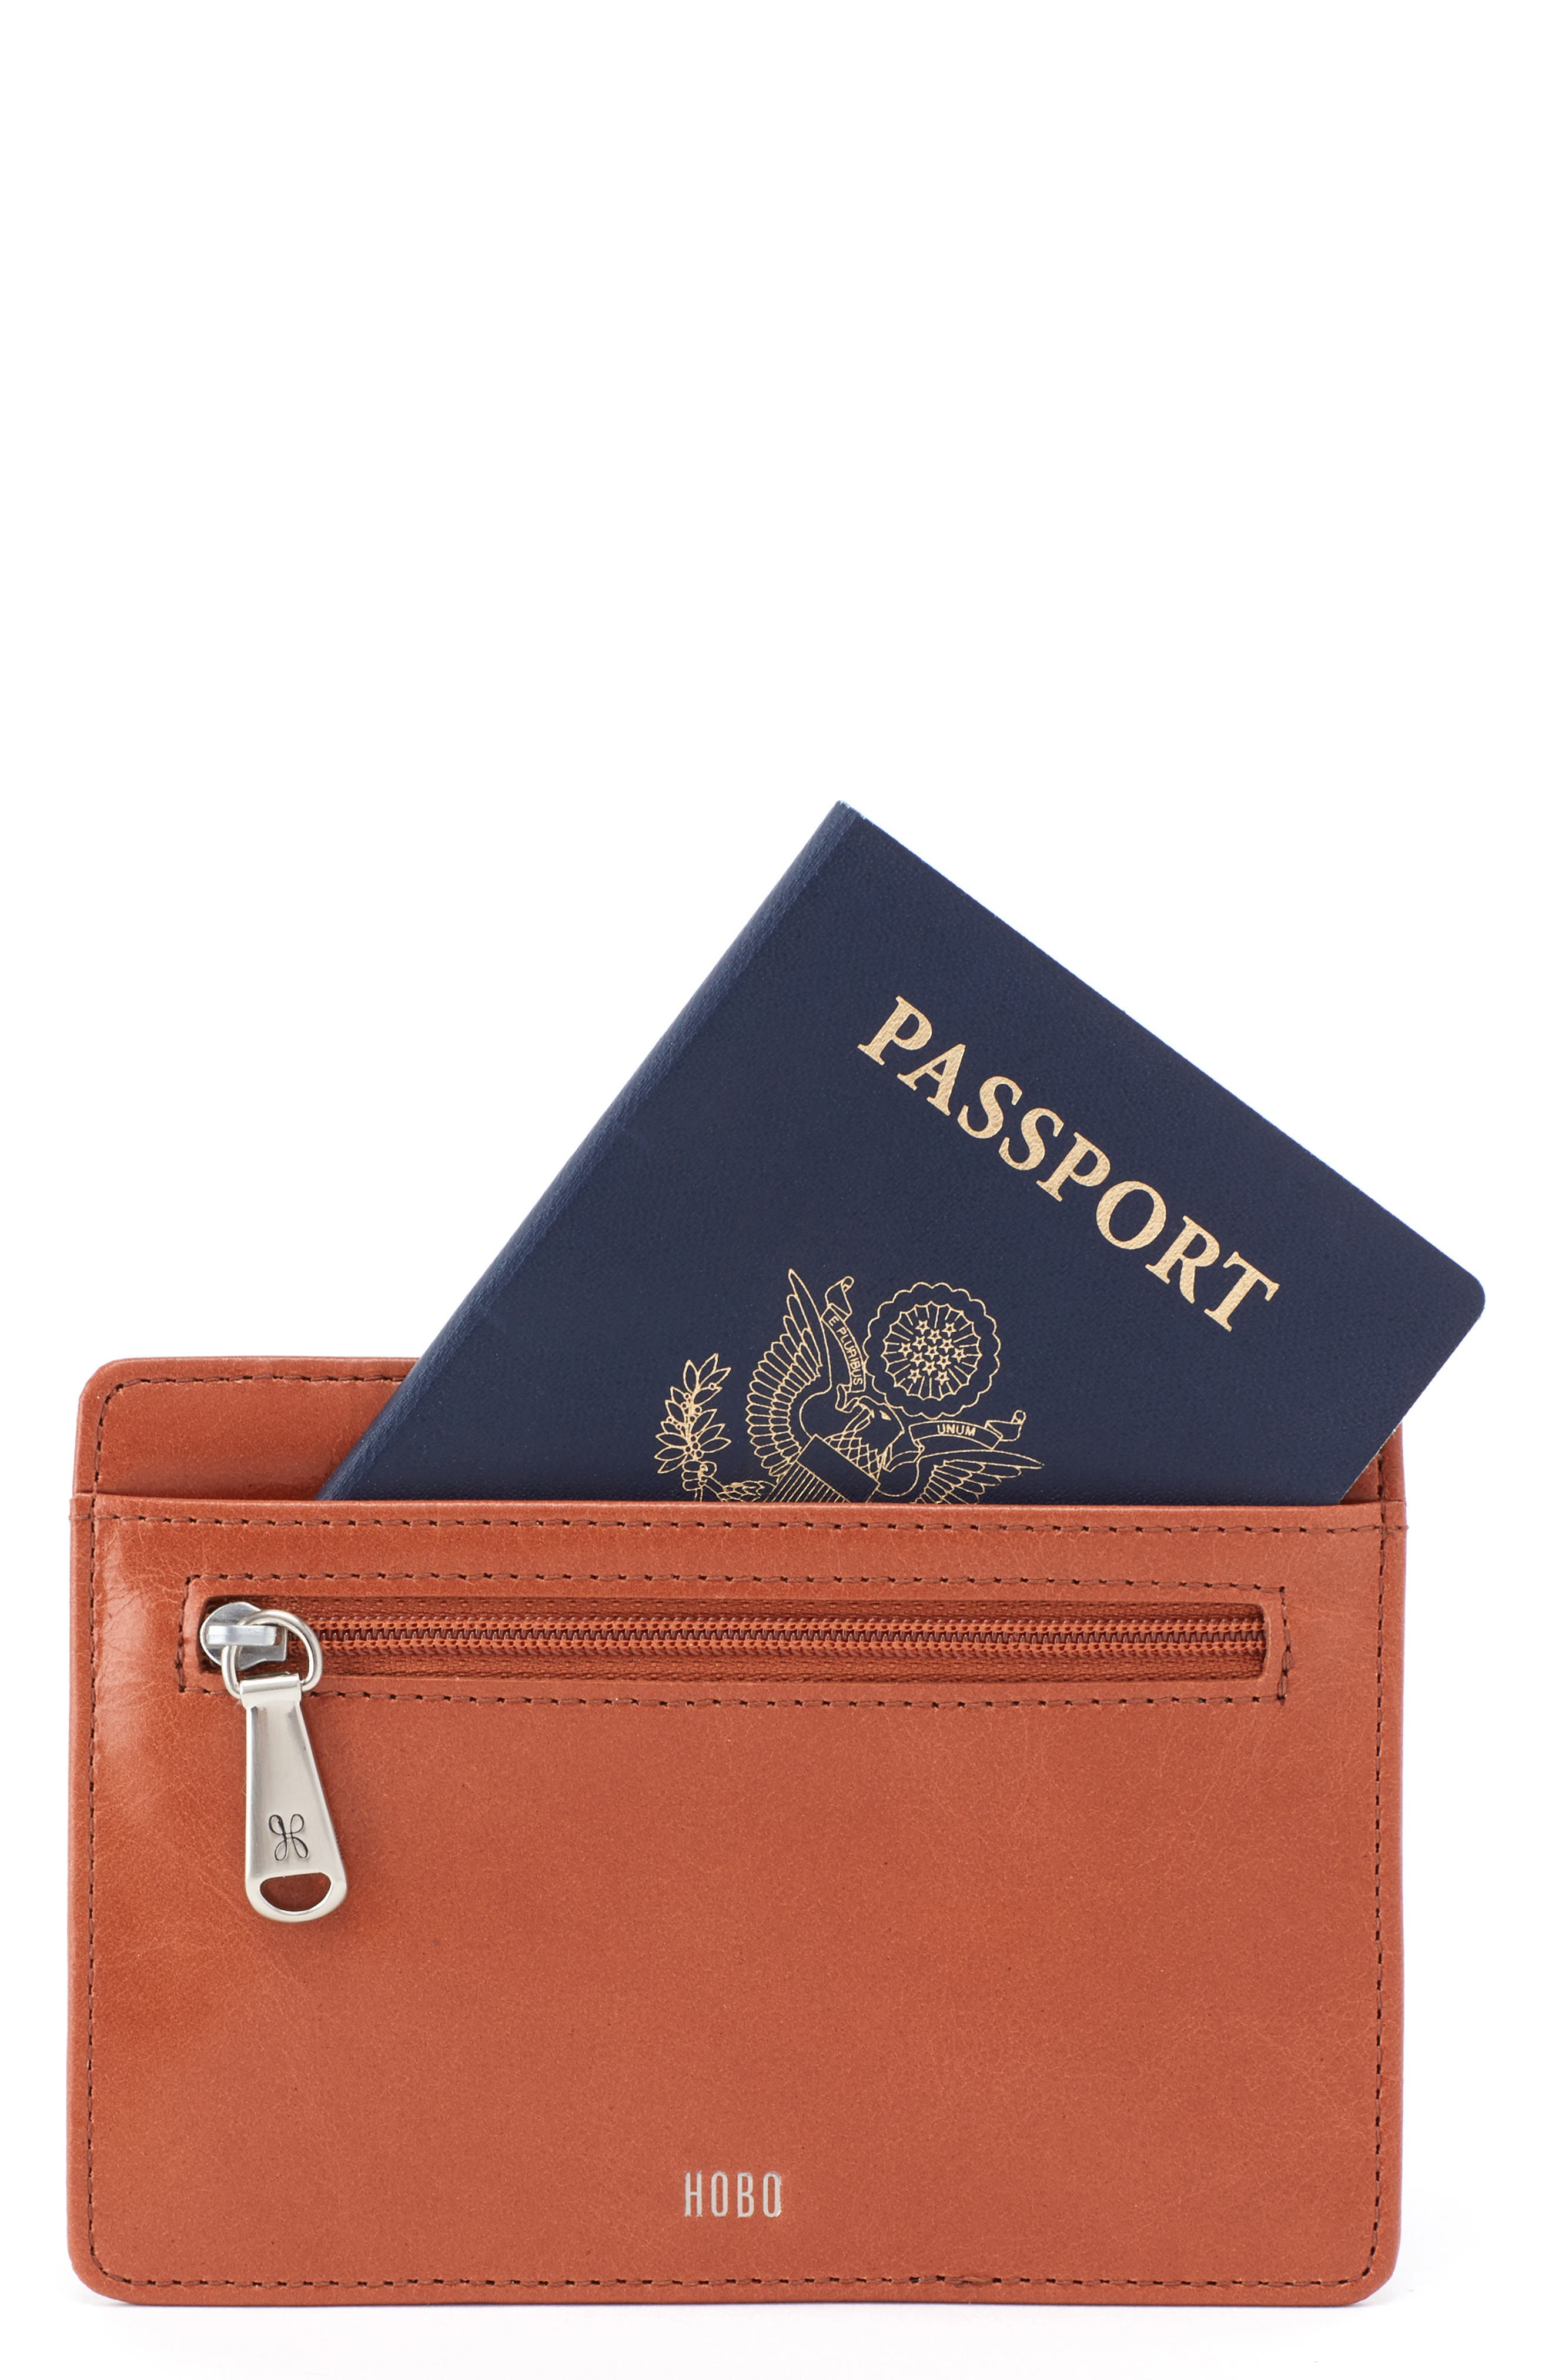 Euro Slide Credit Card & Passport Case,                         Main,                         color, CLAY